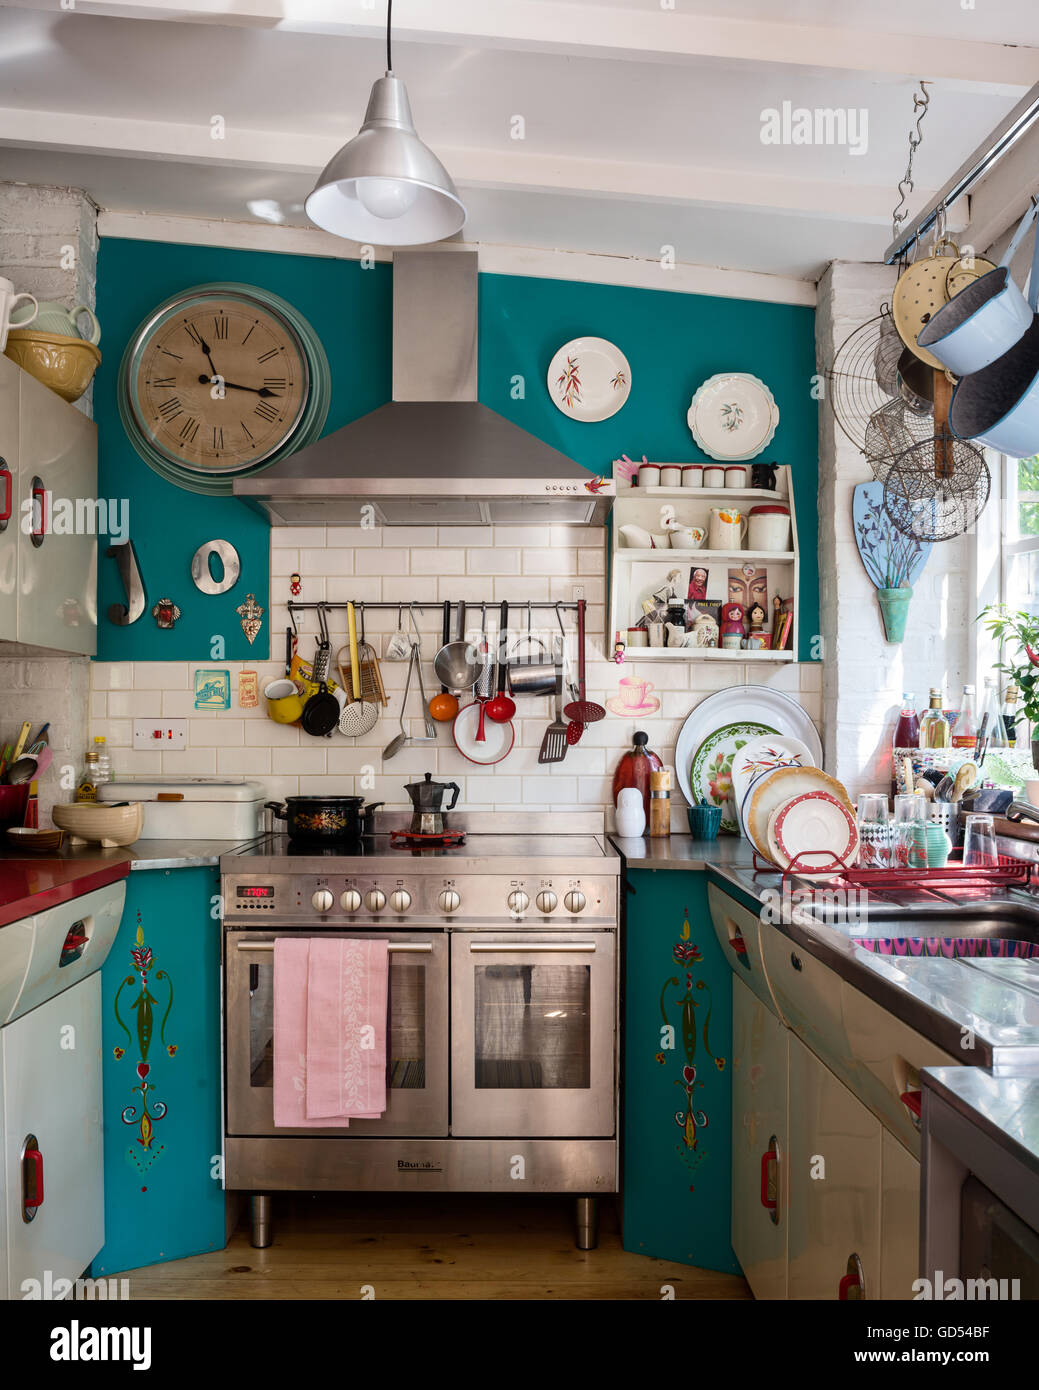 Eclectic Kitchen Eclectic Kitchen With 1950s English Rose Units And St Giles Blue